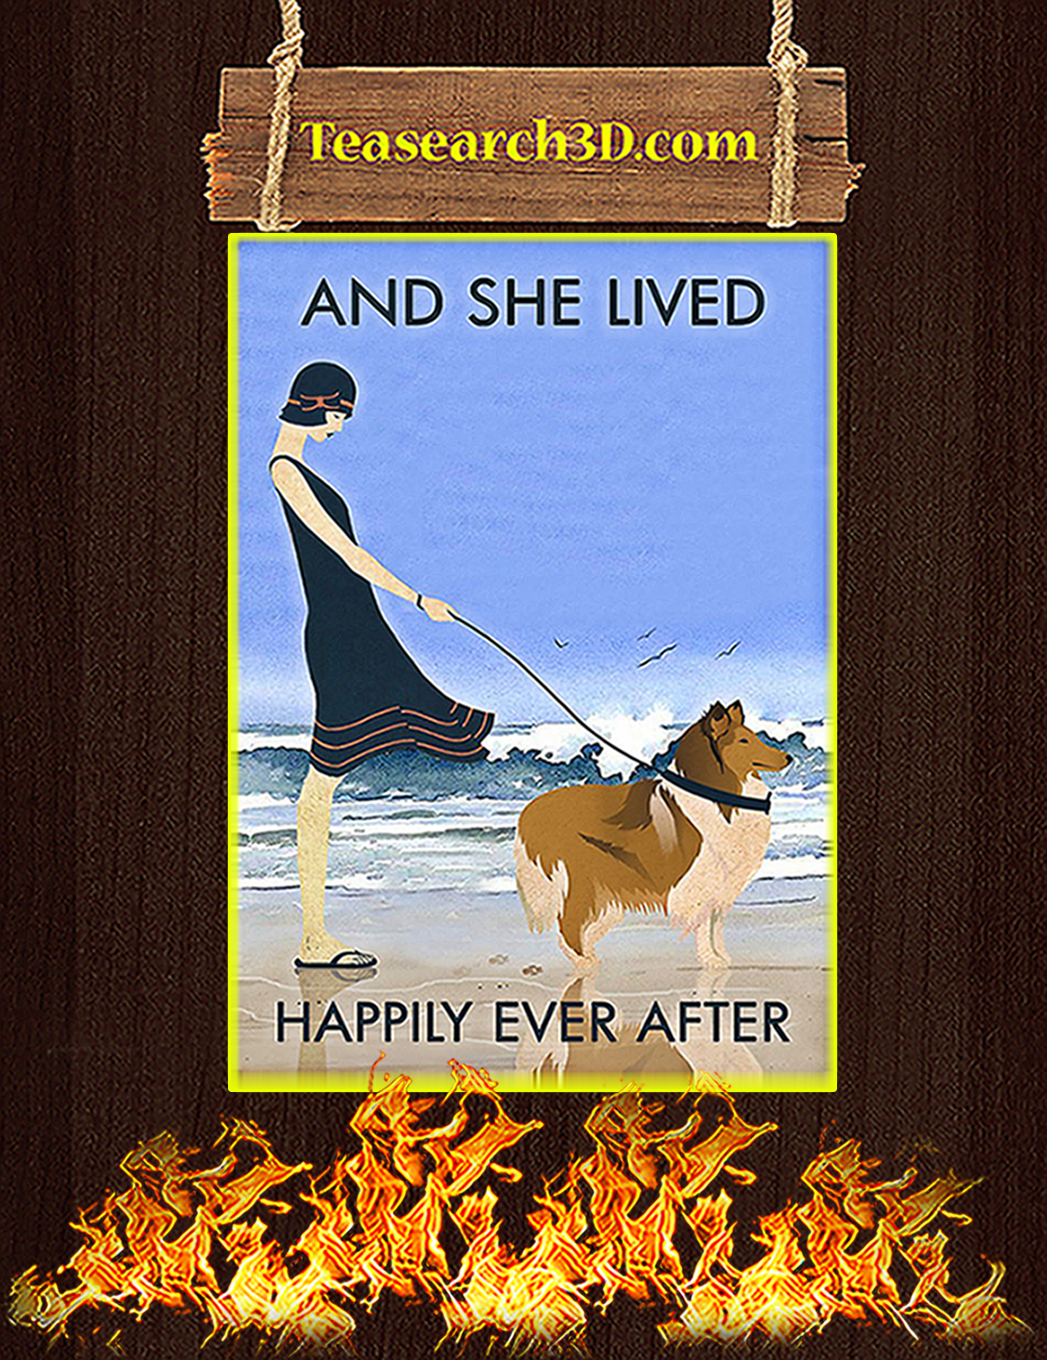 Beach and collie dog and she lived happily ever after poster A1